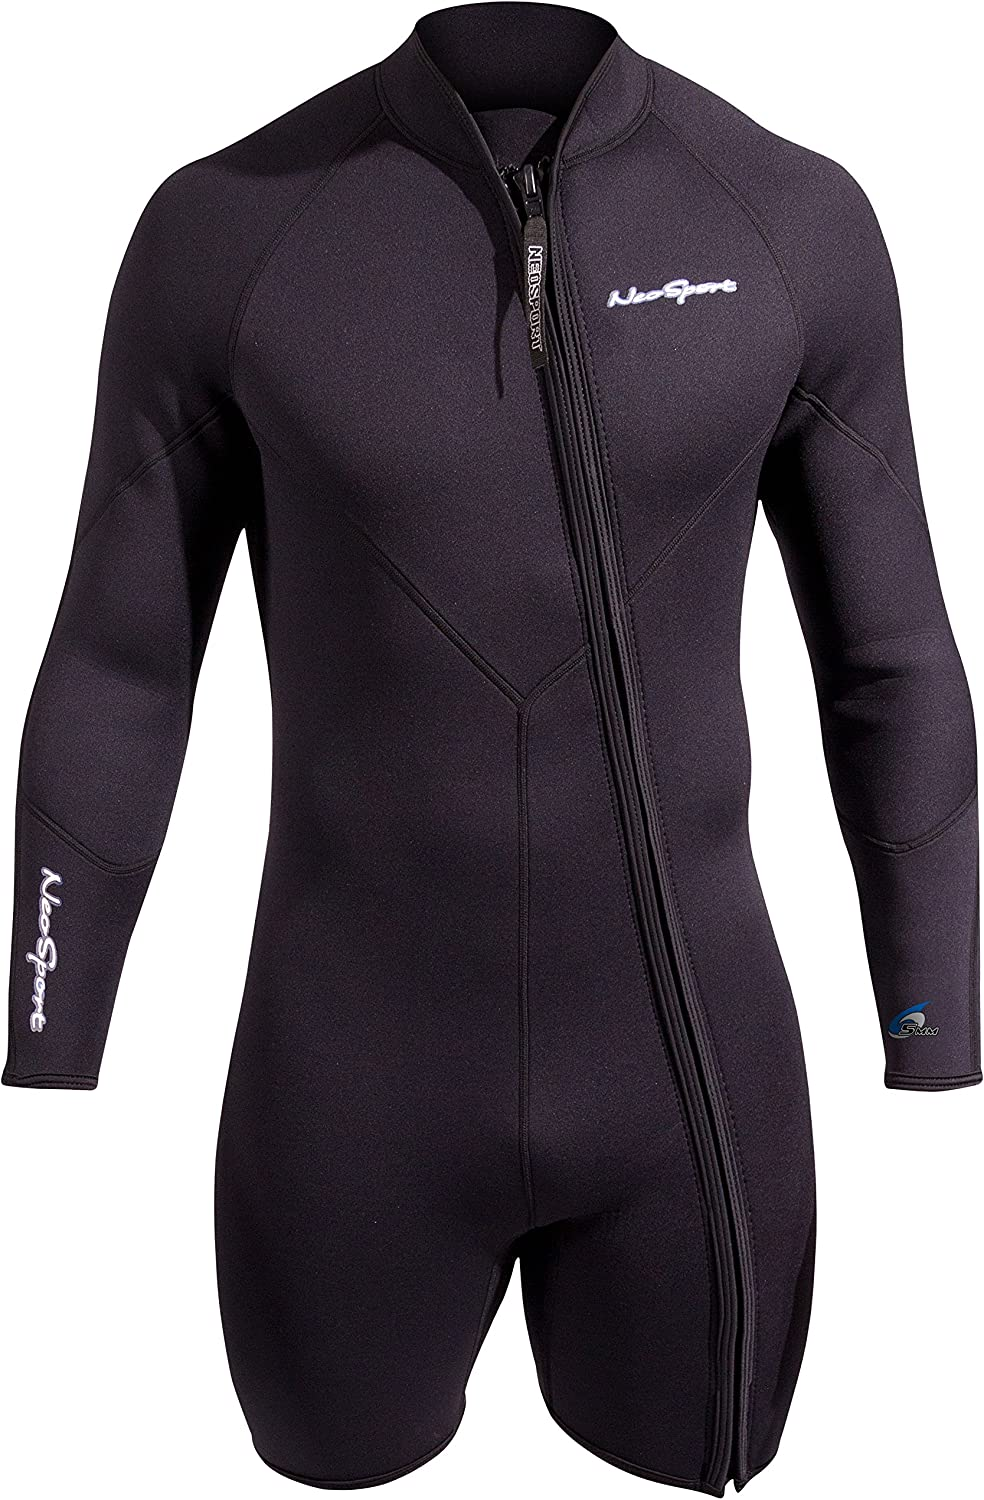 IMERSION SERIOLE STRECHY JACKET 5 MM WET SUITS SUITS AND COMPLEMENTS BLACK